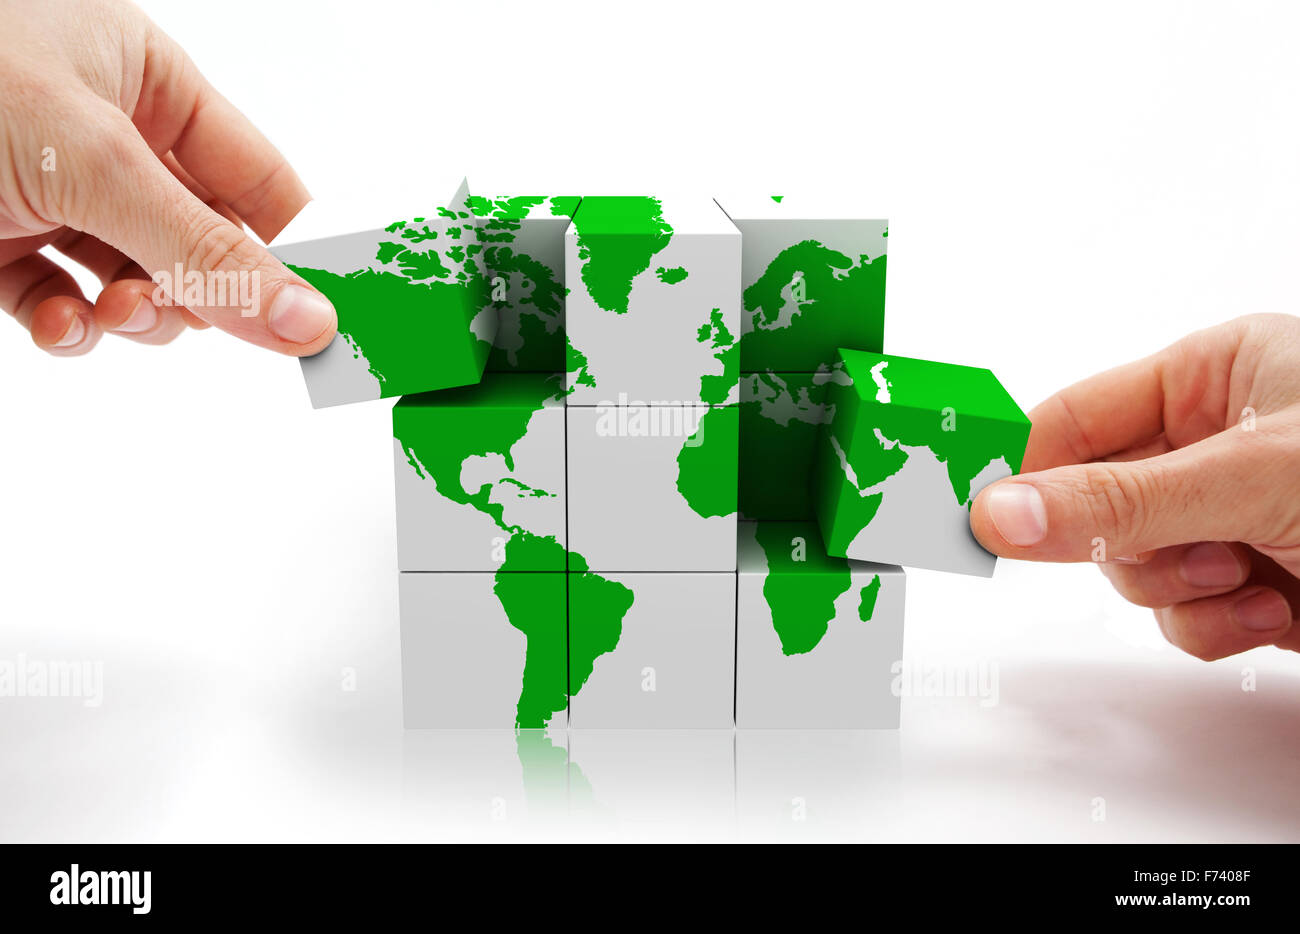 3d image of conceptual cube world map - Stock Image